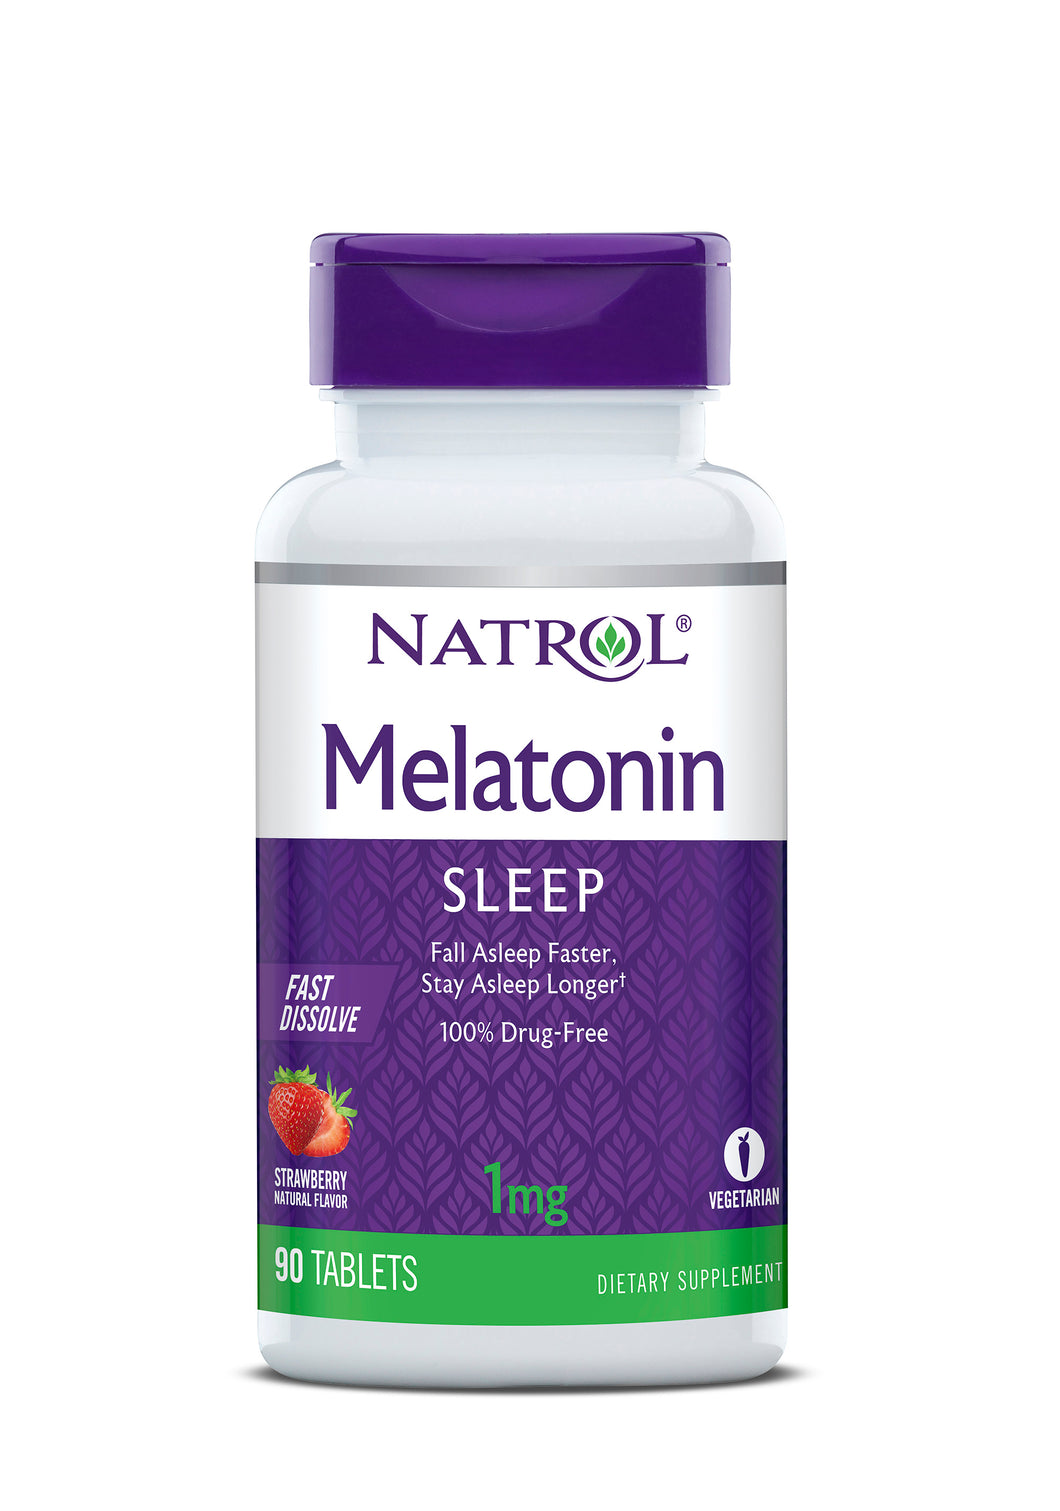 Natrol Melatonin Fast Dissolve Tablets, Strawberry flavor, 1mg, 90 Count